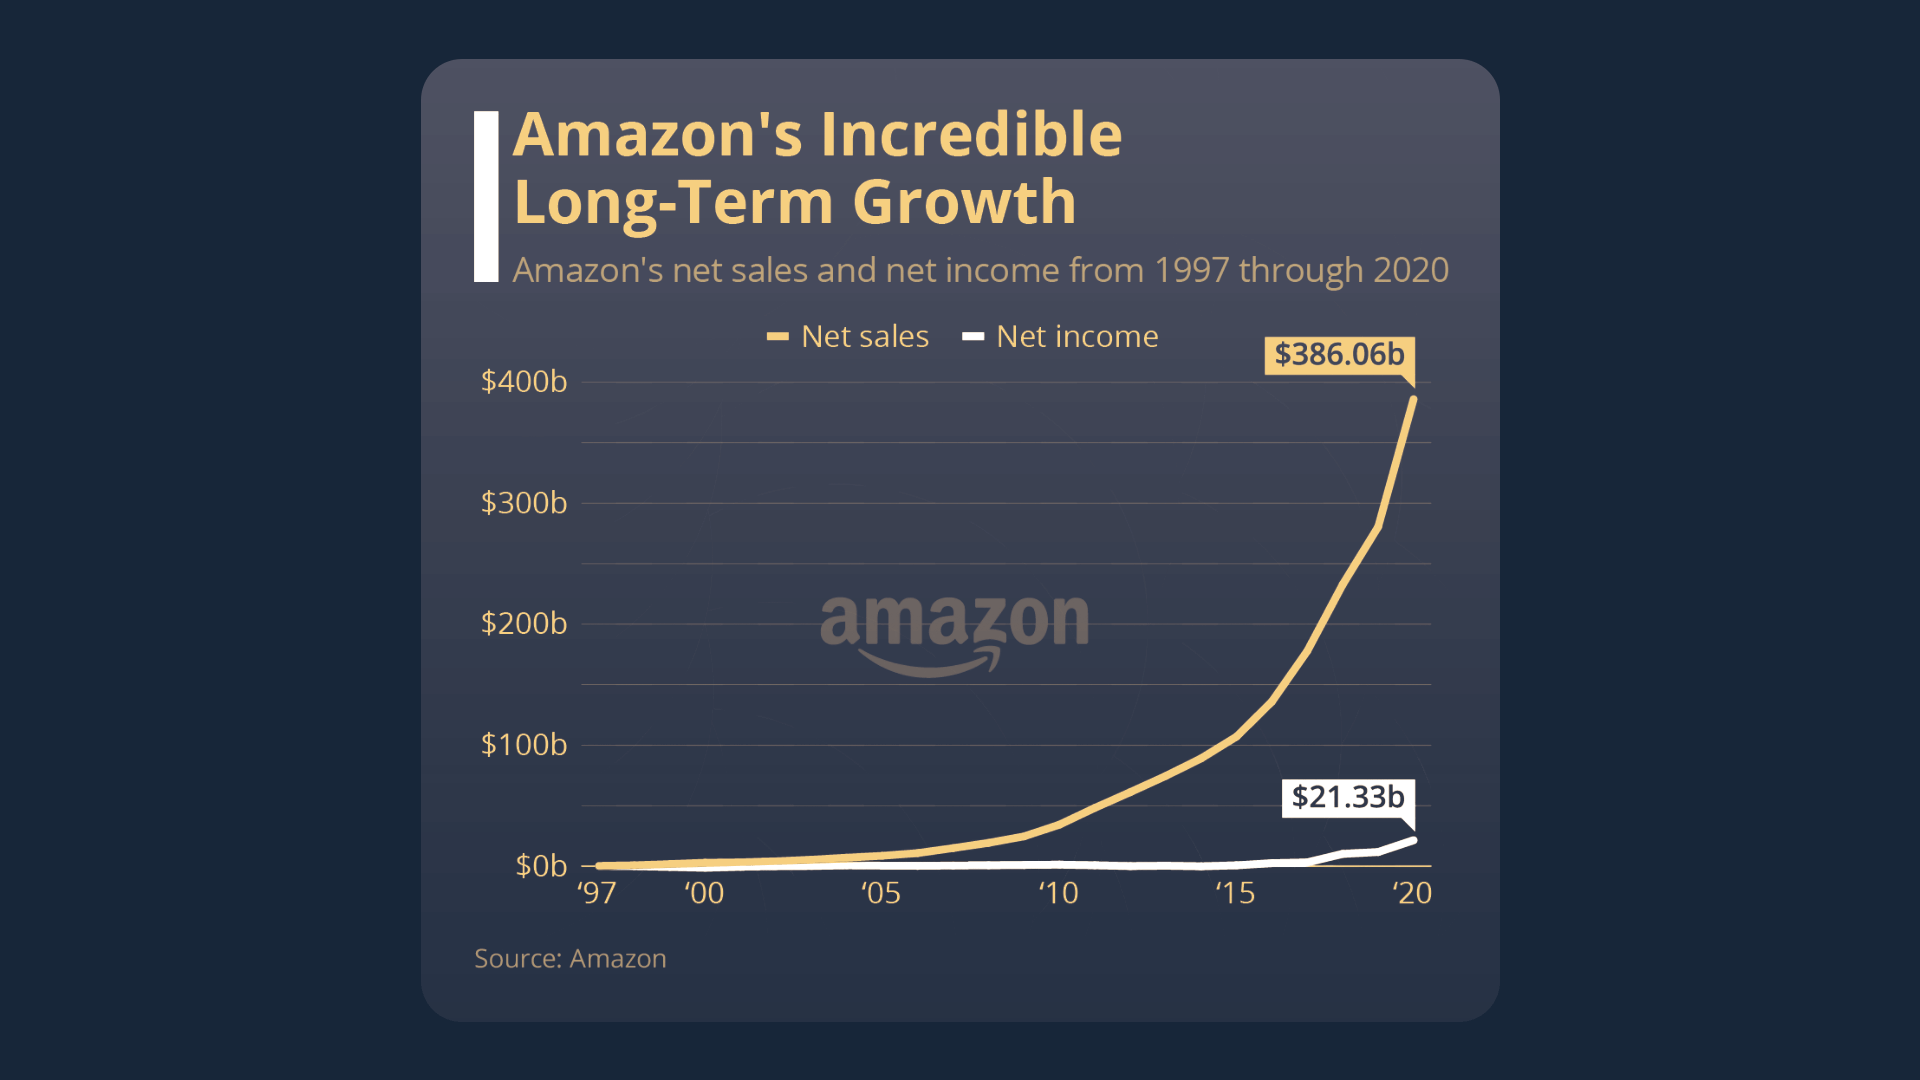 Graph showing the upward growth of Amazon's net sales and income from 1997 through 2020. Sales peak at $386.06 billion and net income peaks at $21.33 billion.